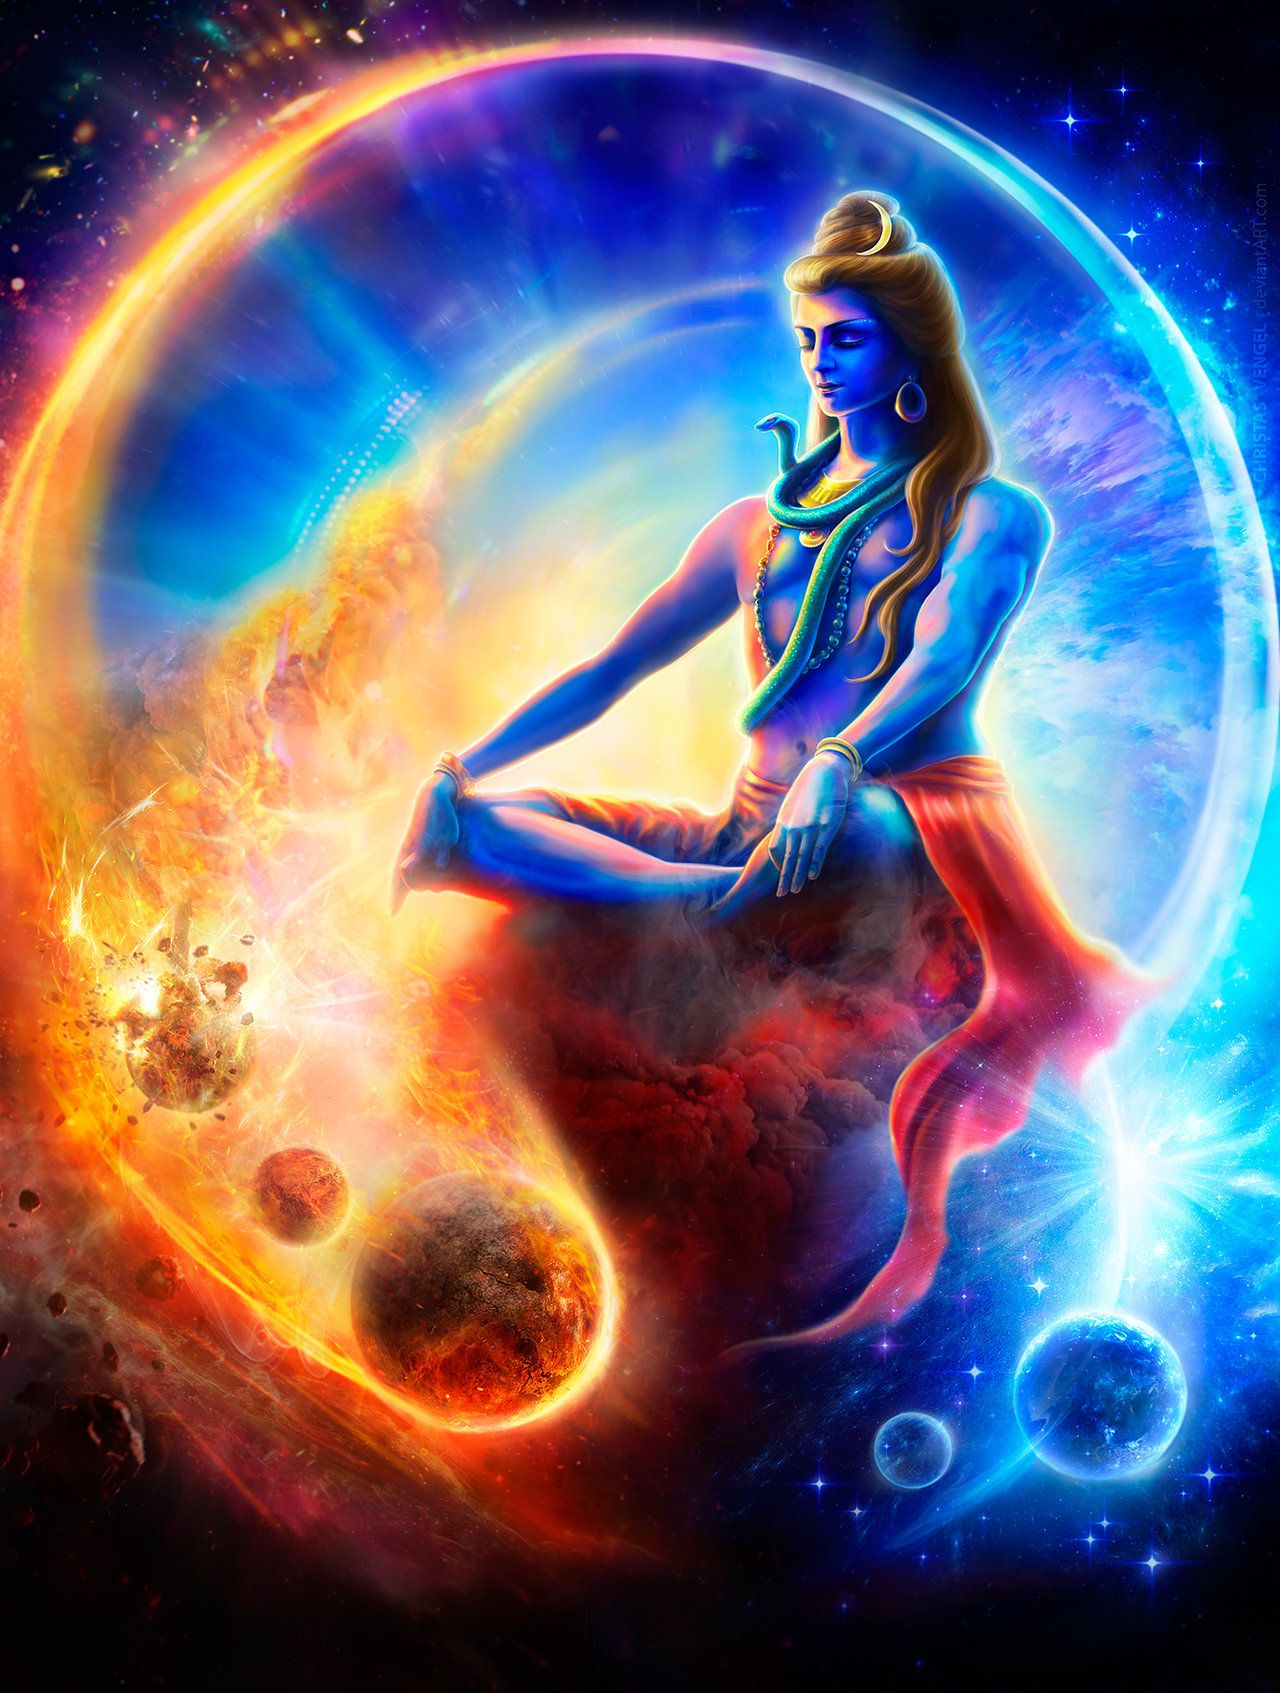 lord shiva pictures 3d on share online devotion pinterest